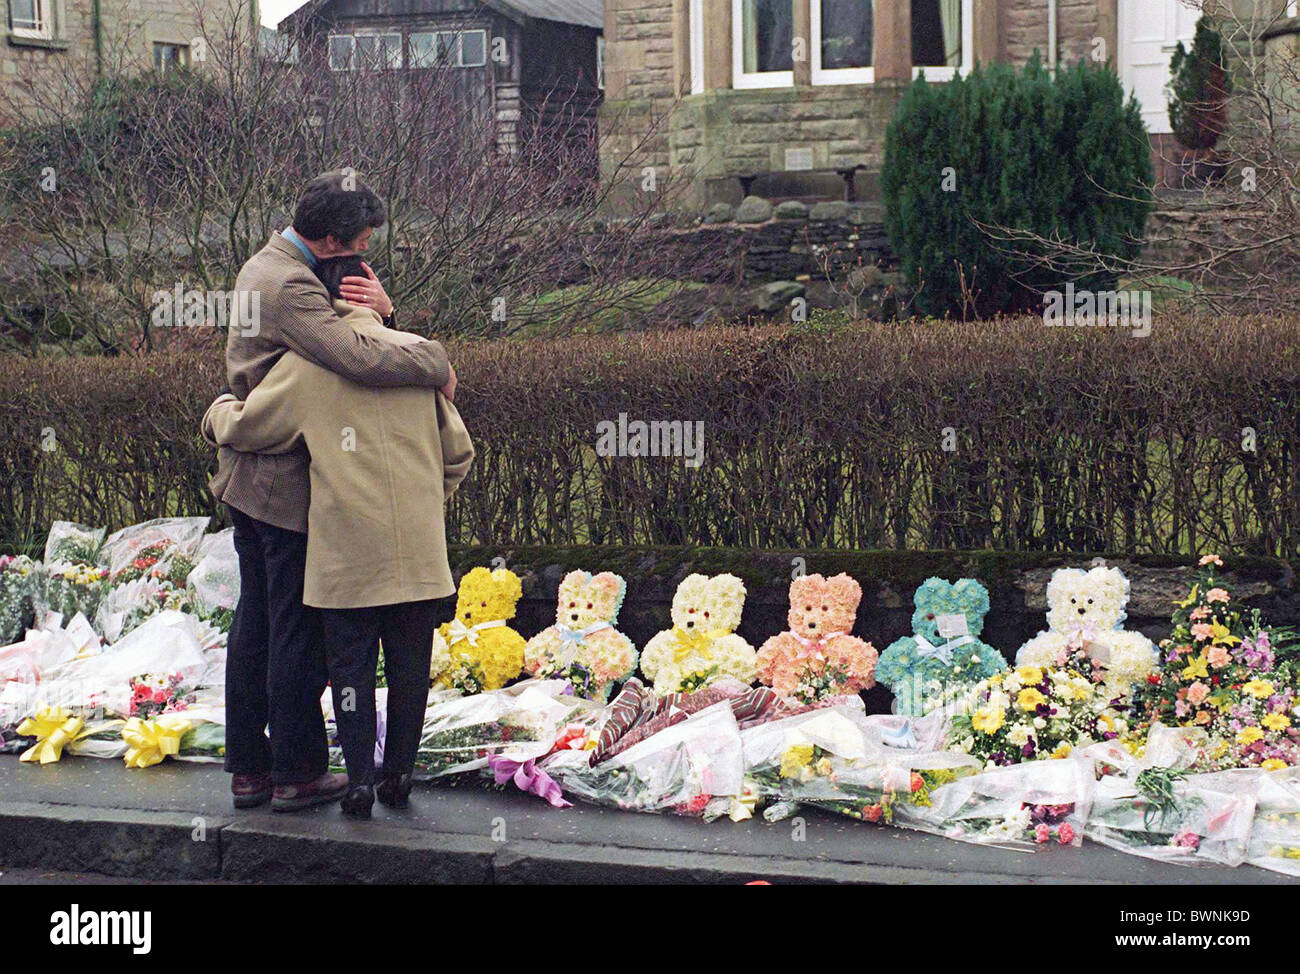 GRIEVING AT DUNBLANE SCHOOL IN SCOTLAND WHERE 16 CHILDREN AND THEIR TEACHER WERE MASSACRED BY A GUNMAN - Stock Image